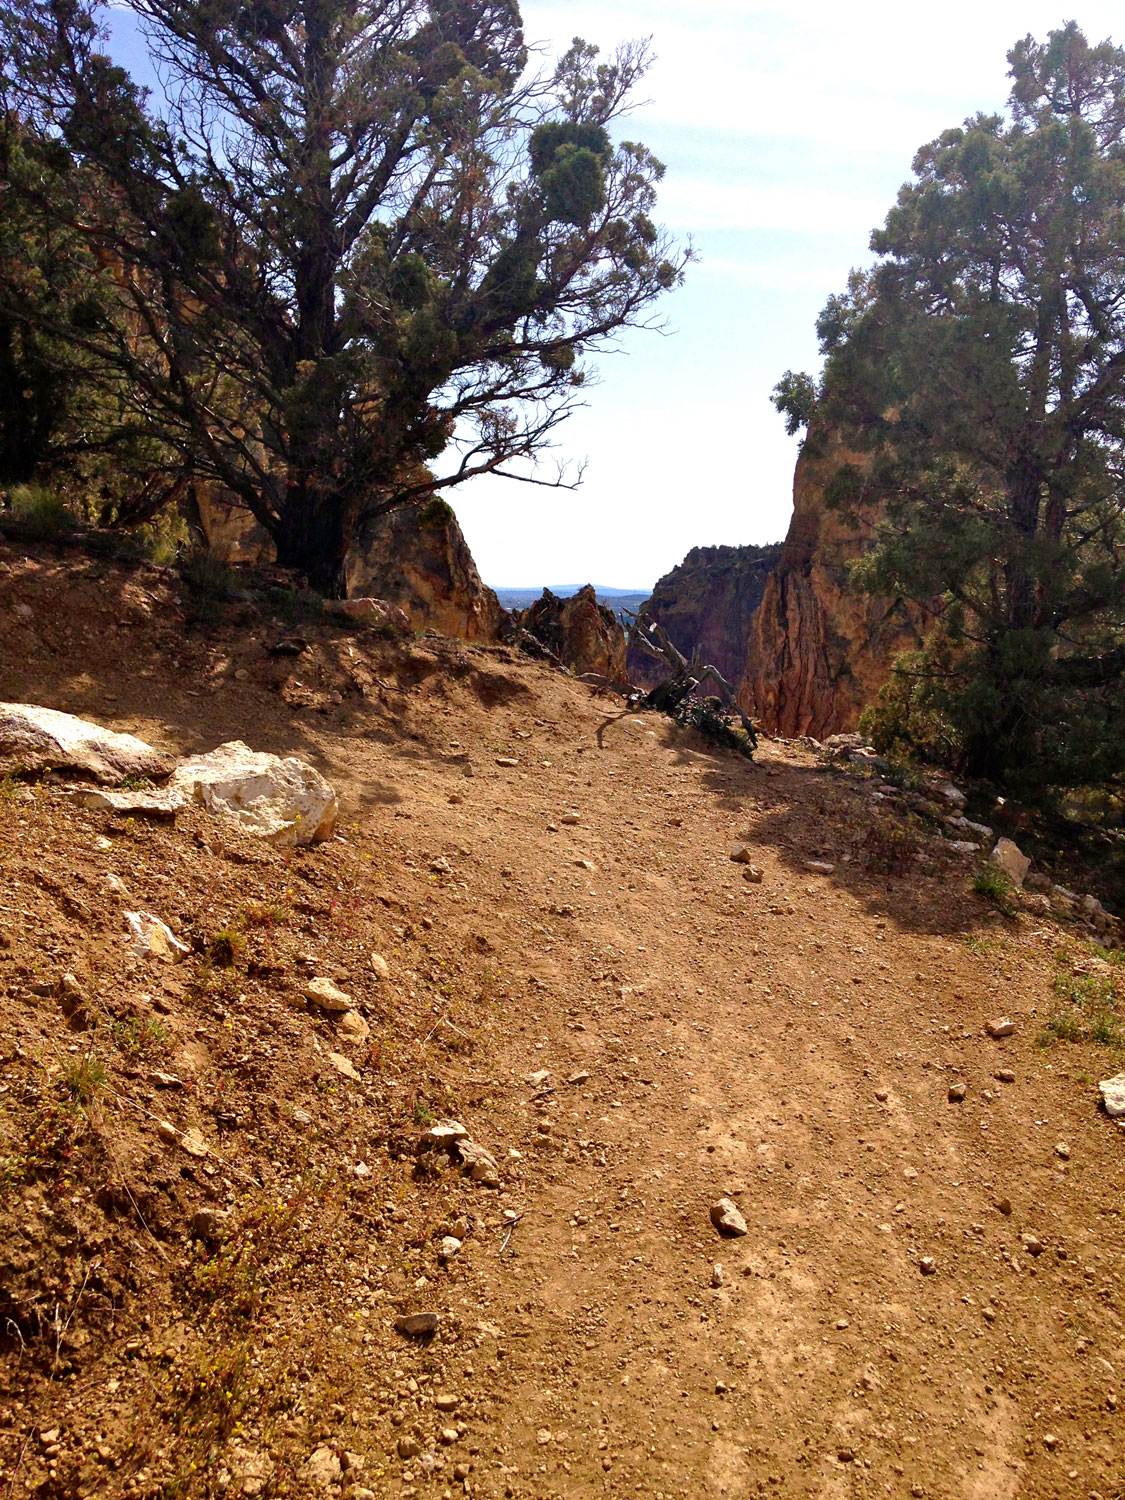 More views are presented at every turn on the Summit Trail at Smith Rock State Park.